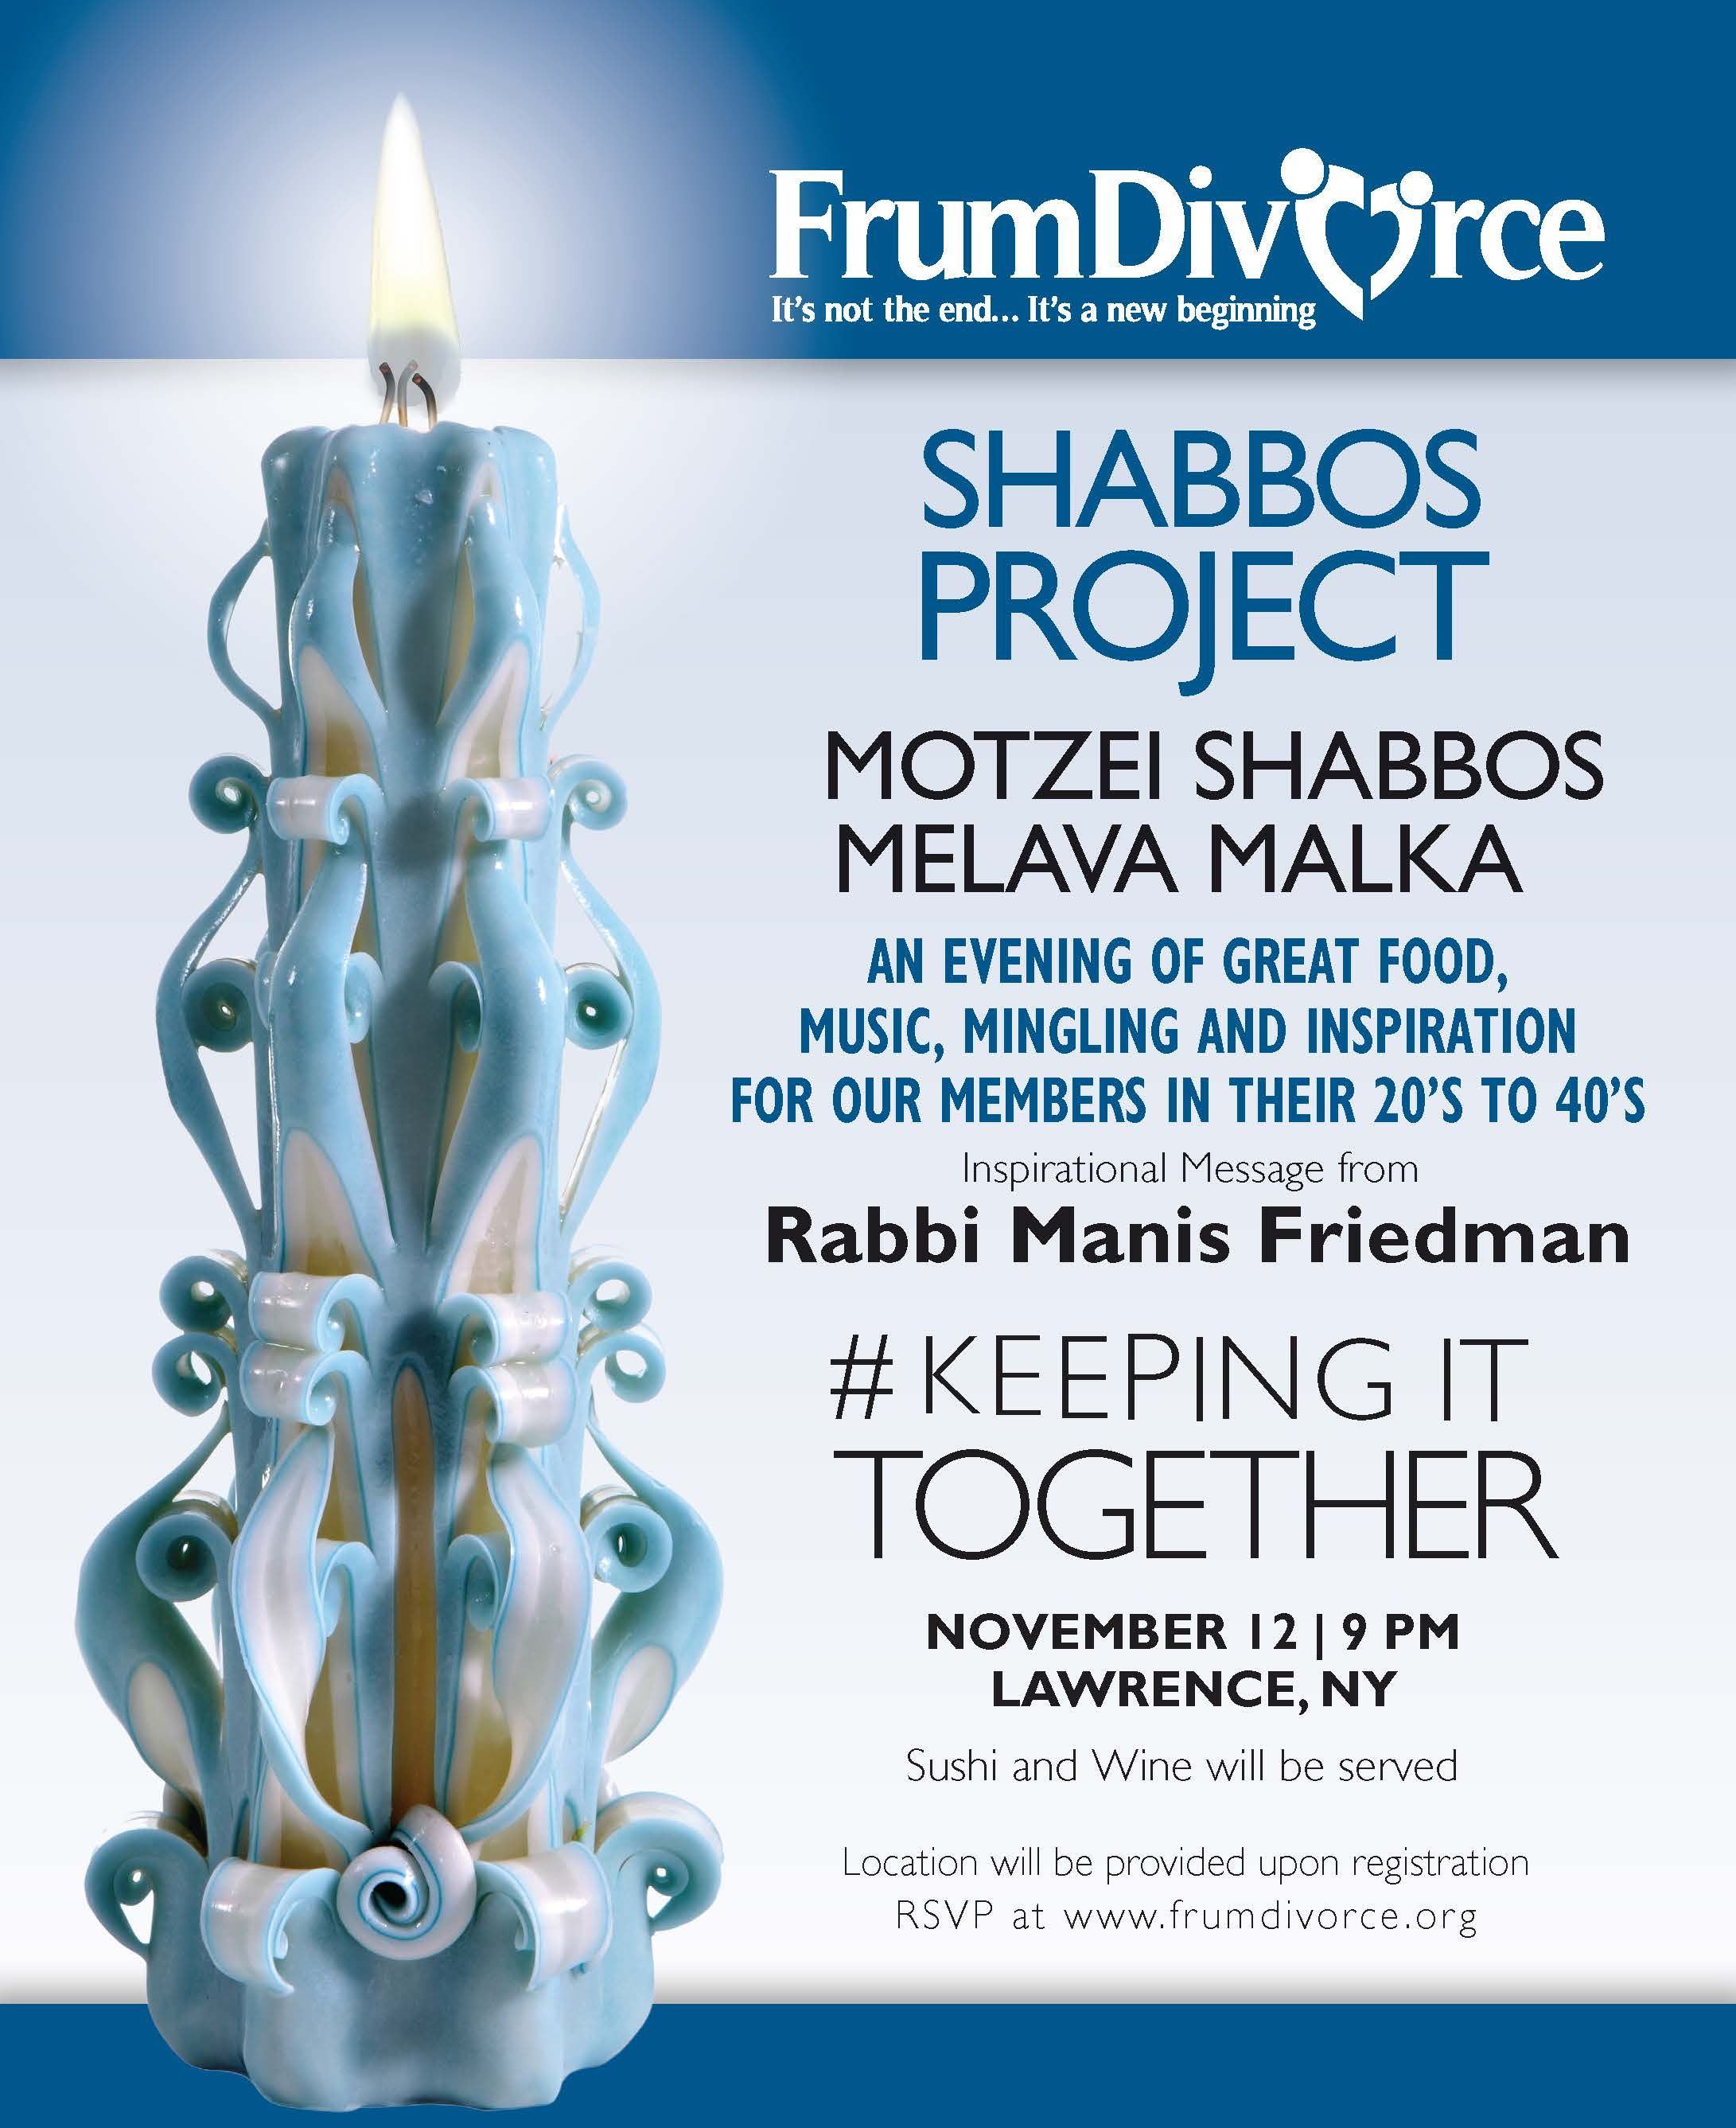 Shabbos Project Melava Malka: Keeping it Together